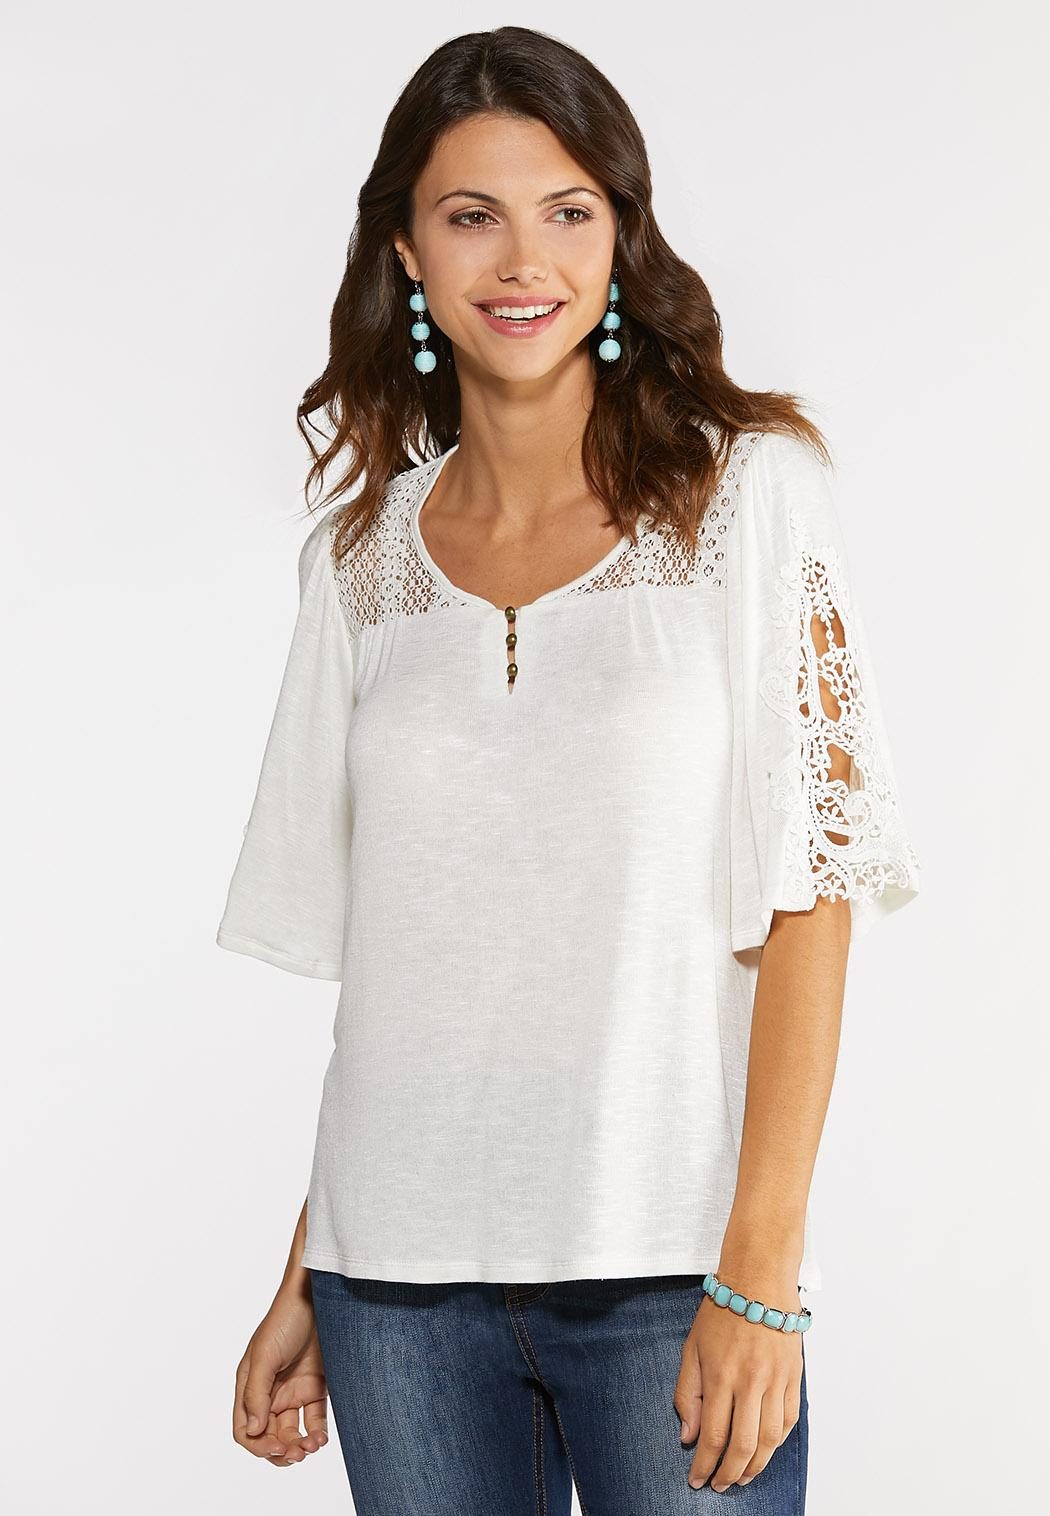 c3a0df0335bfef Lacy Bell Sleeve Top alternate view · Lacy Bell Sleeve Top